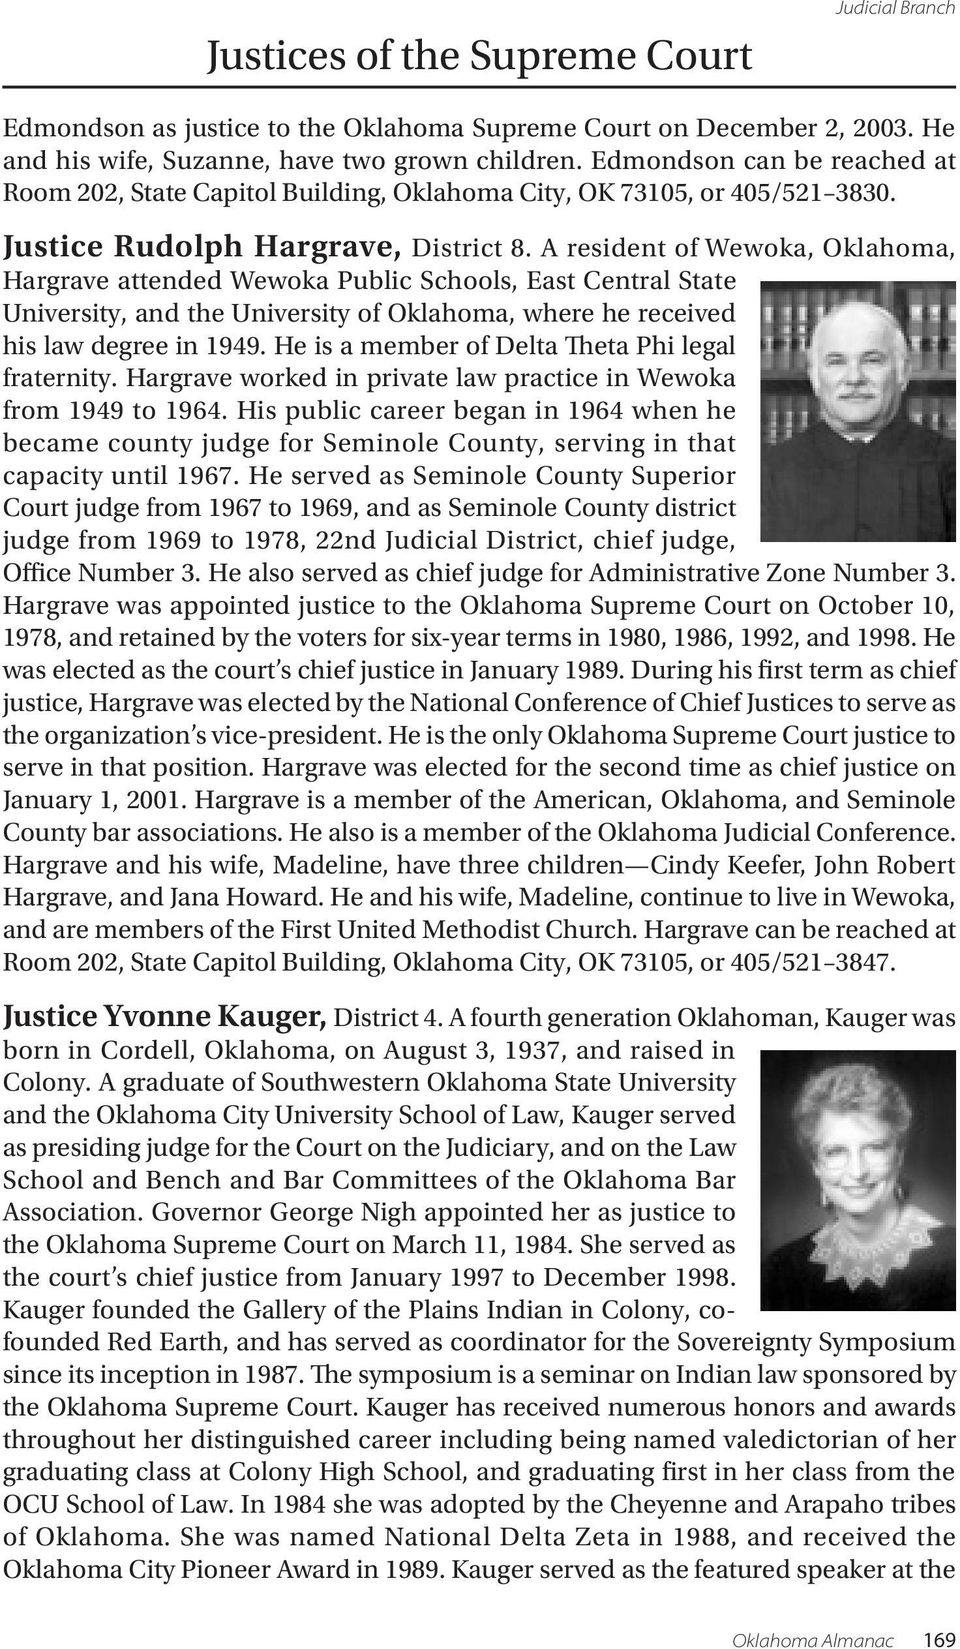 A resident of Wewoka, Oklahoma, Hargrave attended Wewoka Public Schools, East Central State University, and the University of Oklahoma, where he received his law degree in 1949.